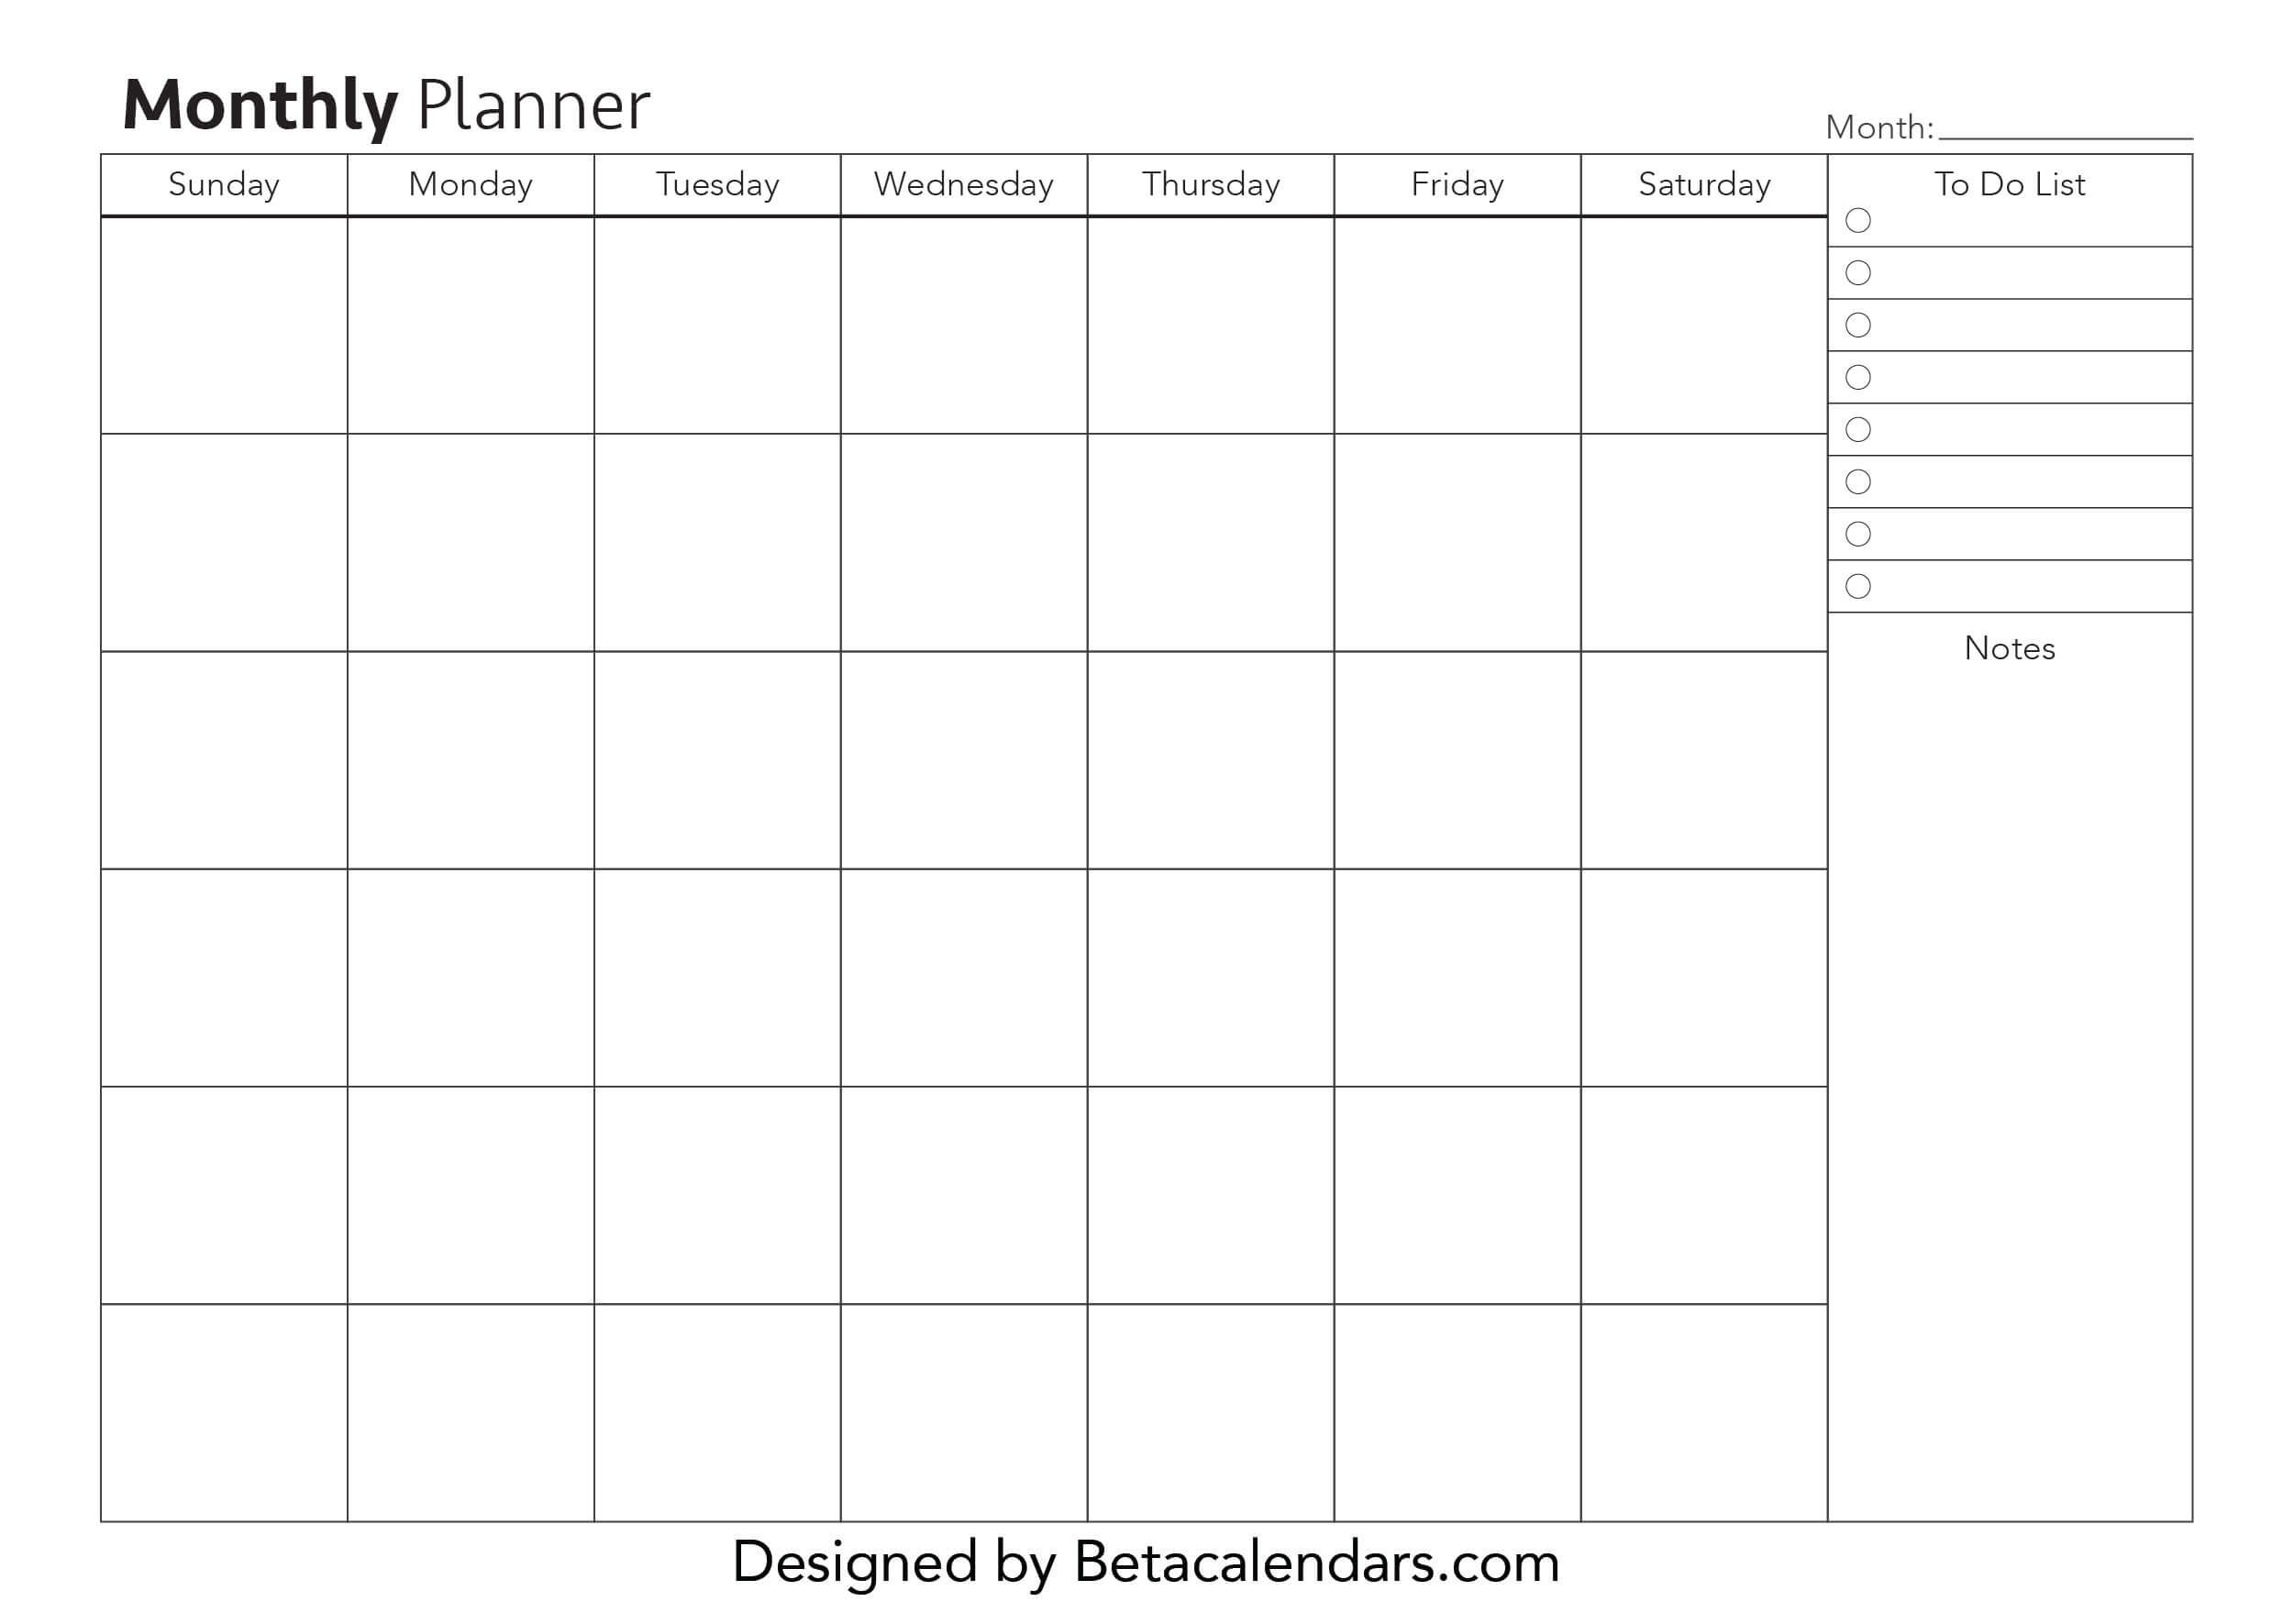 Free Printable Monthly Planner Beta Calendars